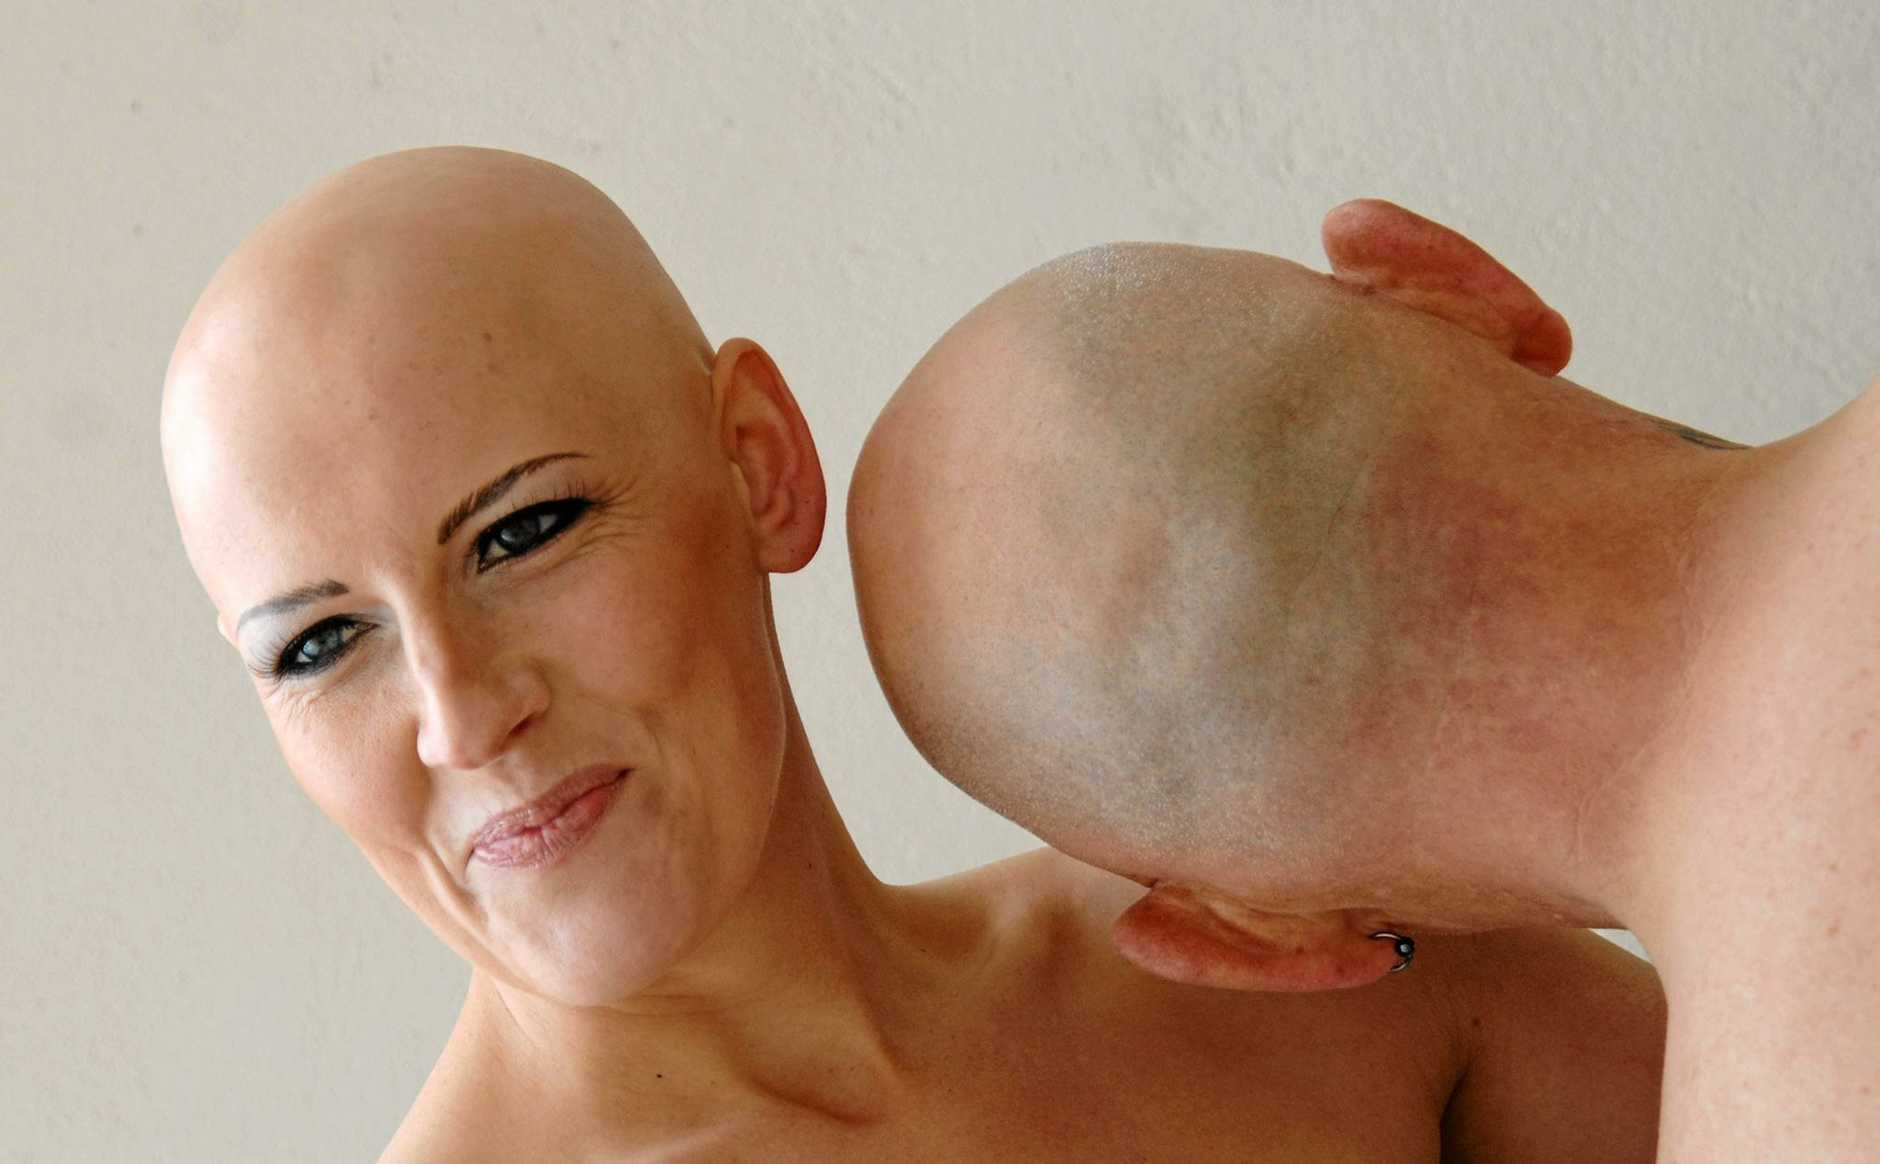 Jayne Waddell with a friend from the United Kingdom poses for a alopecia awareness campaign.